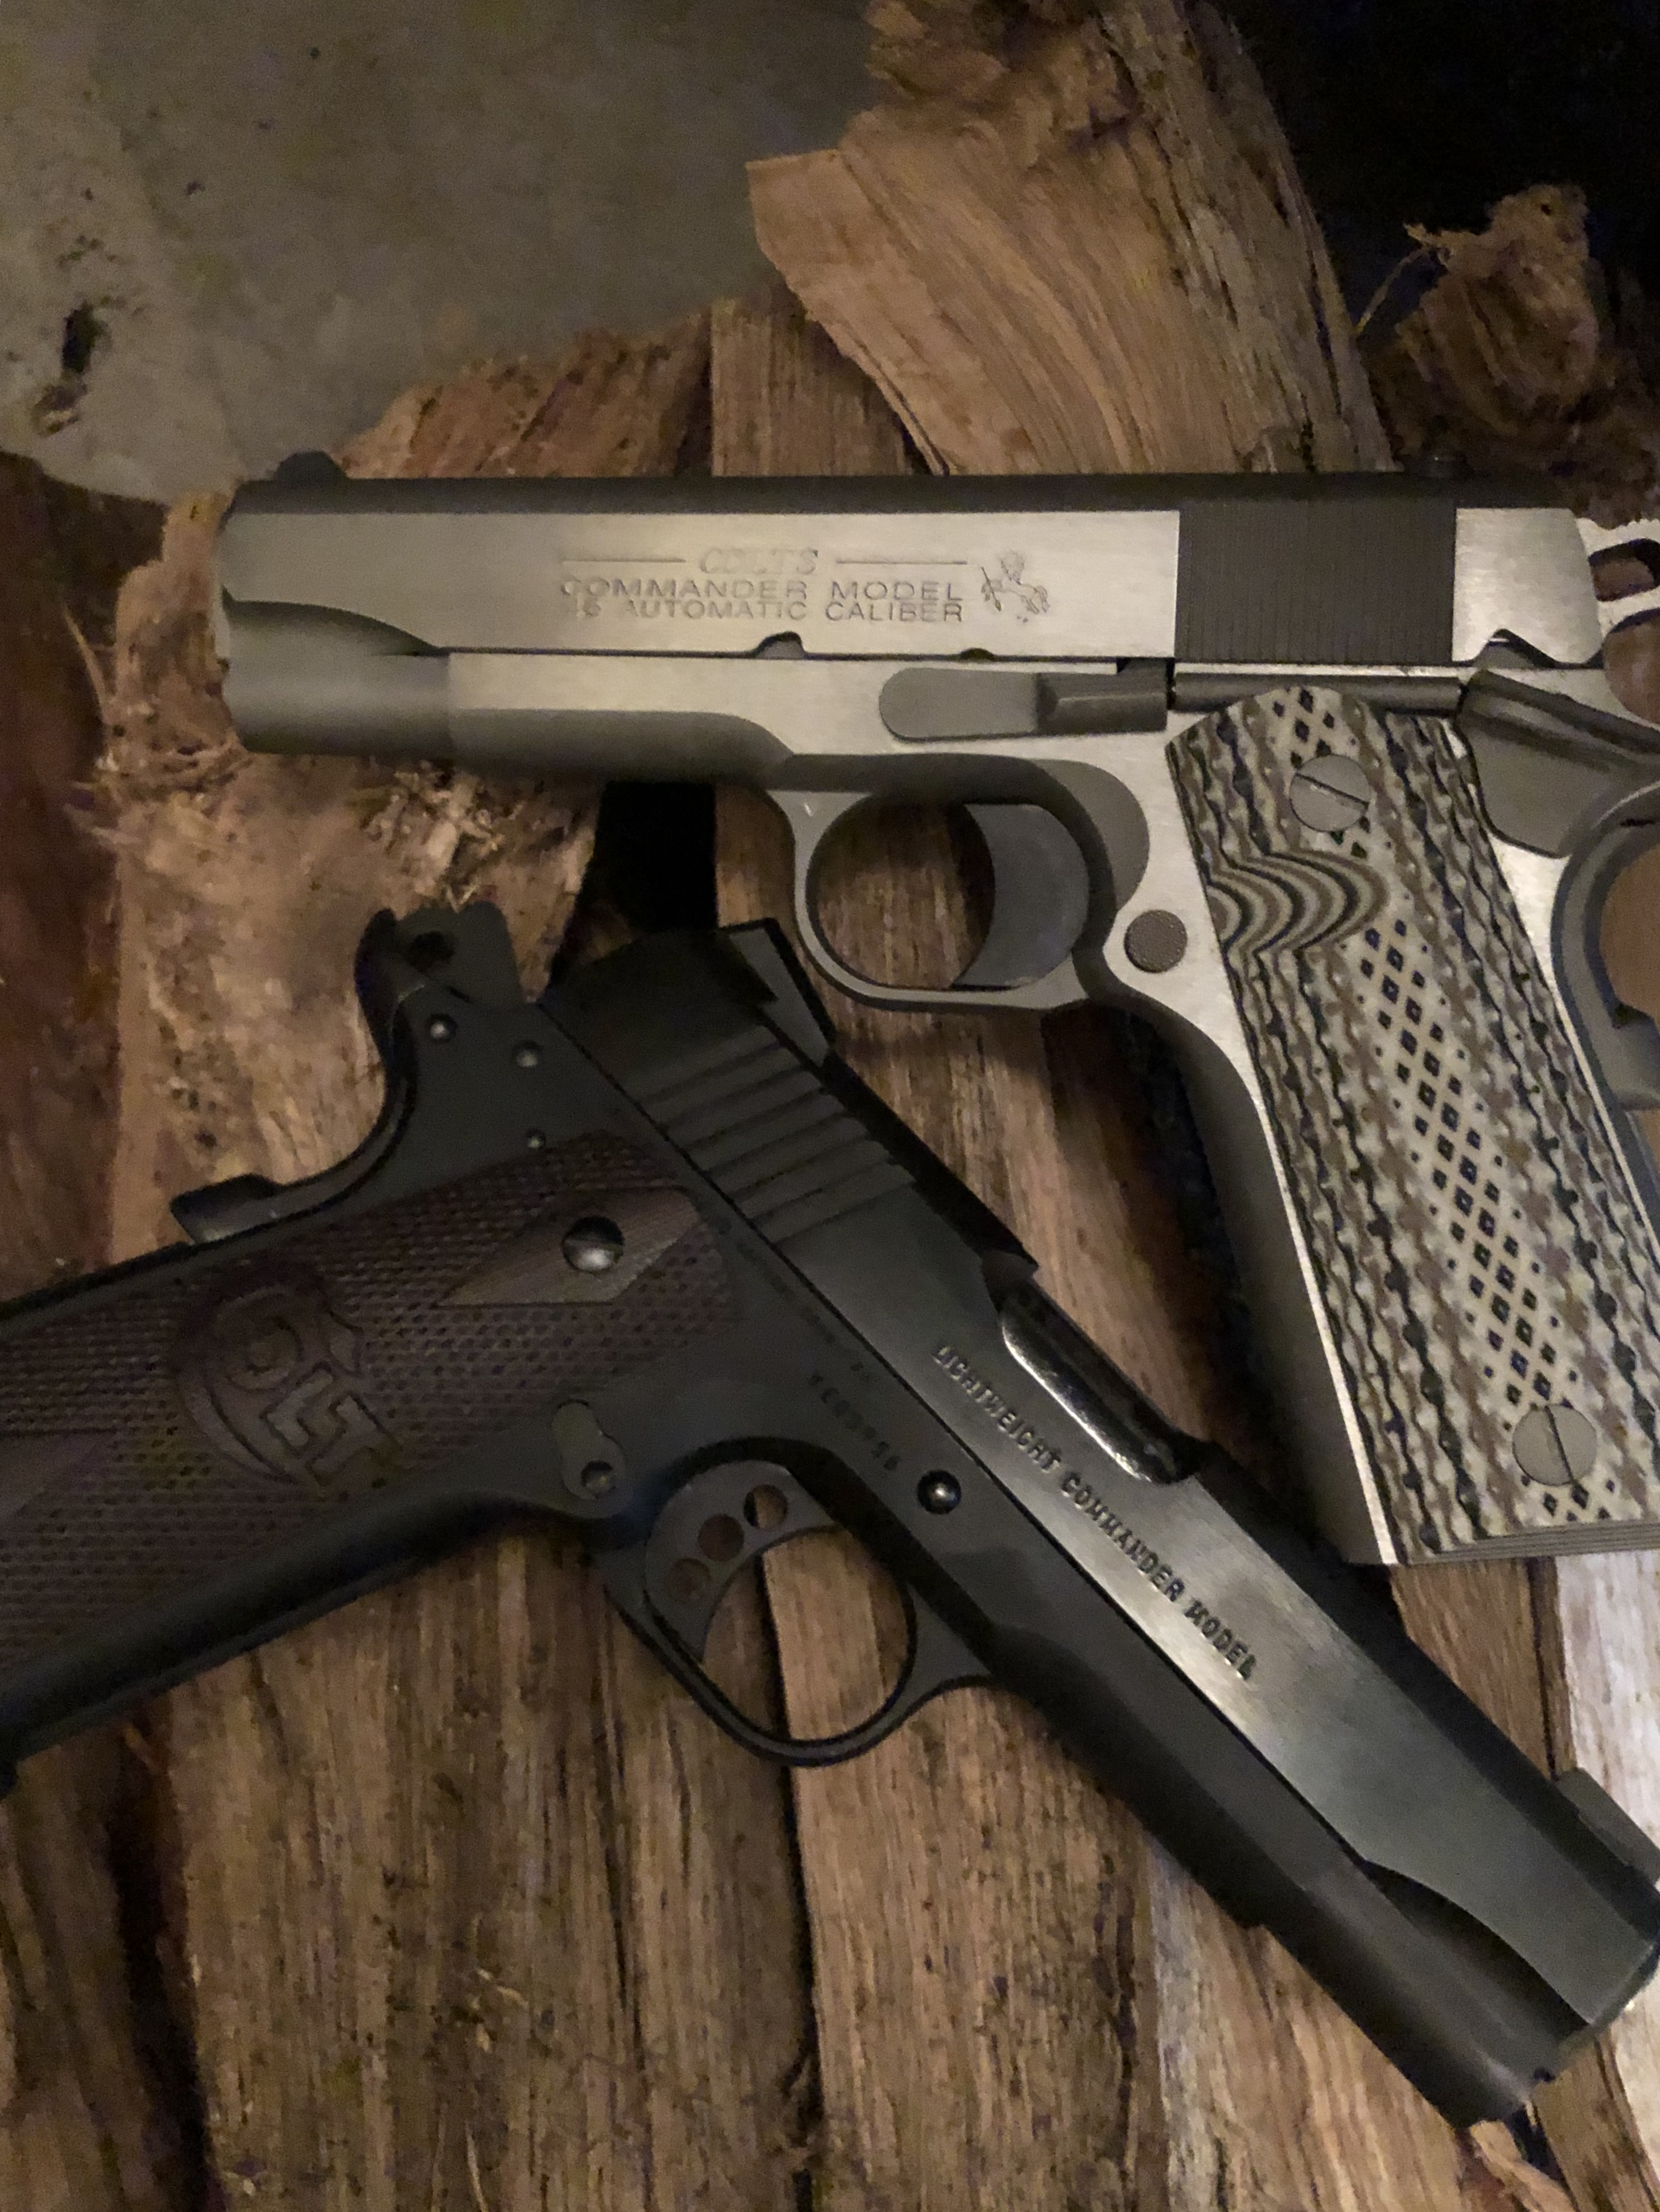 Looking for a REAL 1911....help me out DC 1911 Experts!-fd0c0f31-a516-4606-9291-d0f601e01172.jpeg